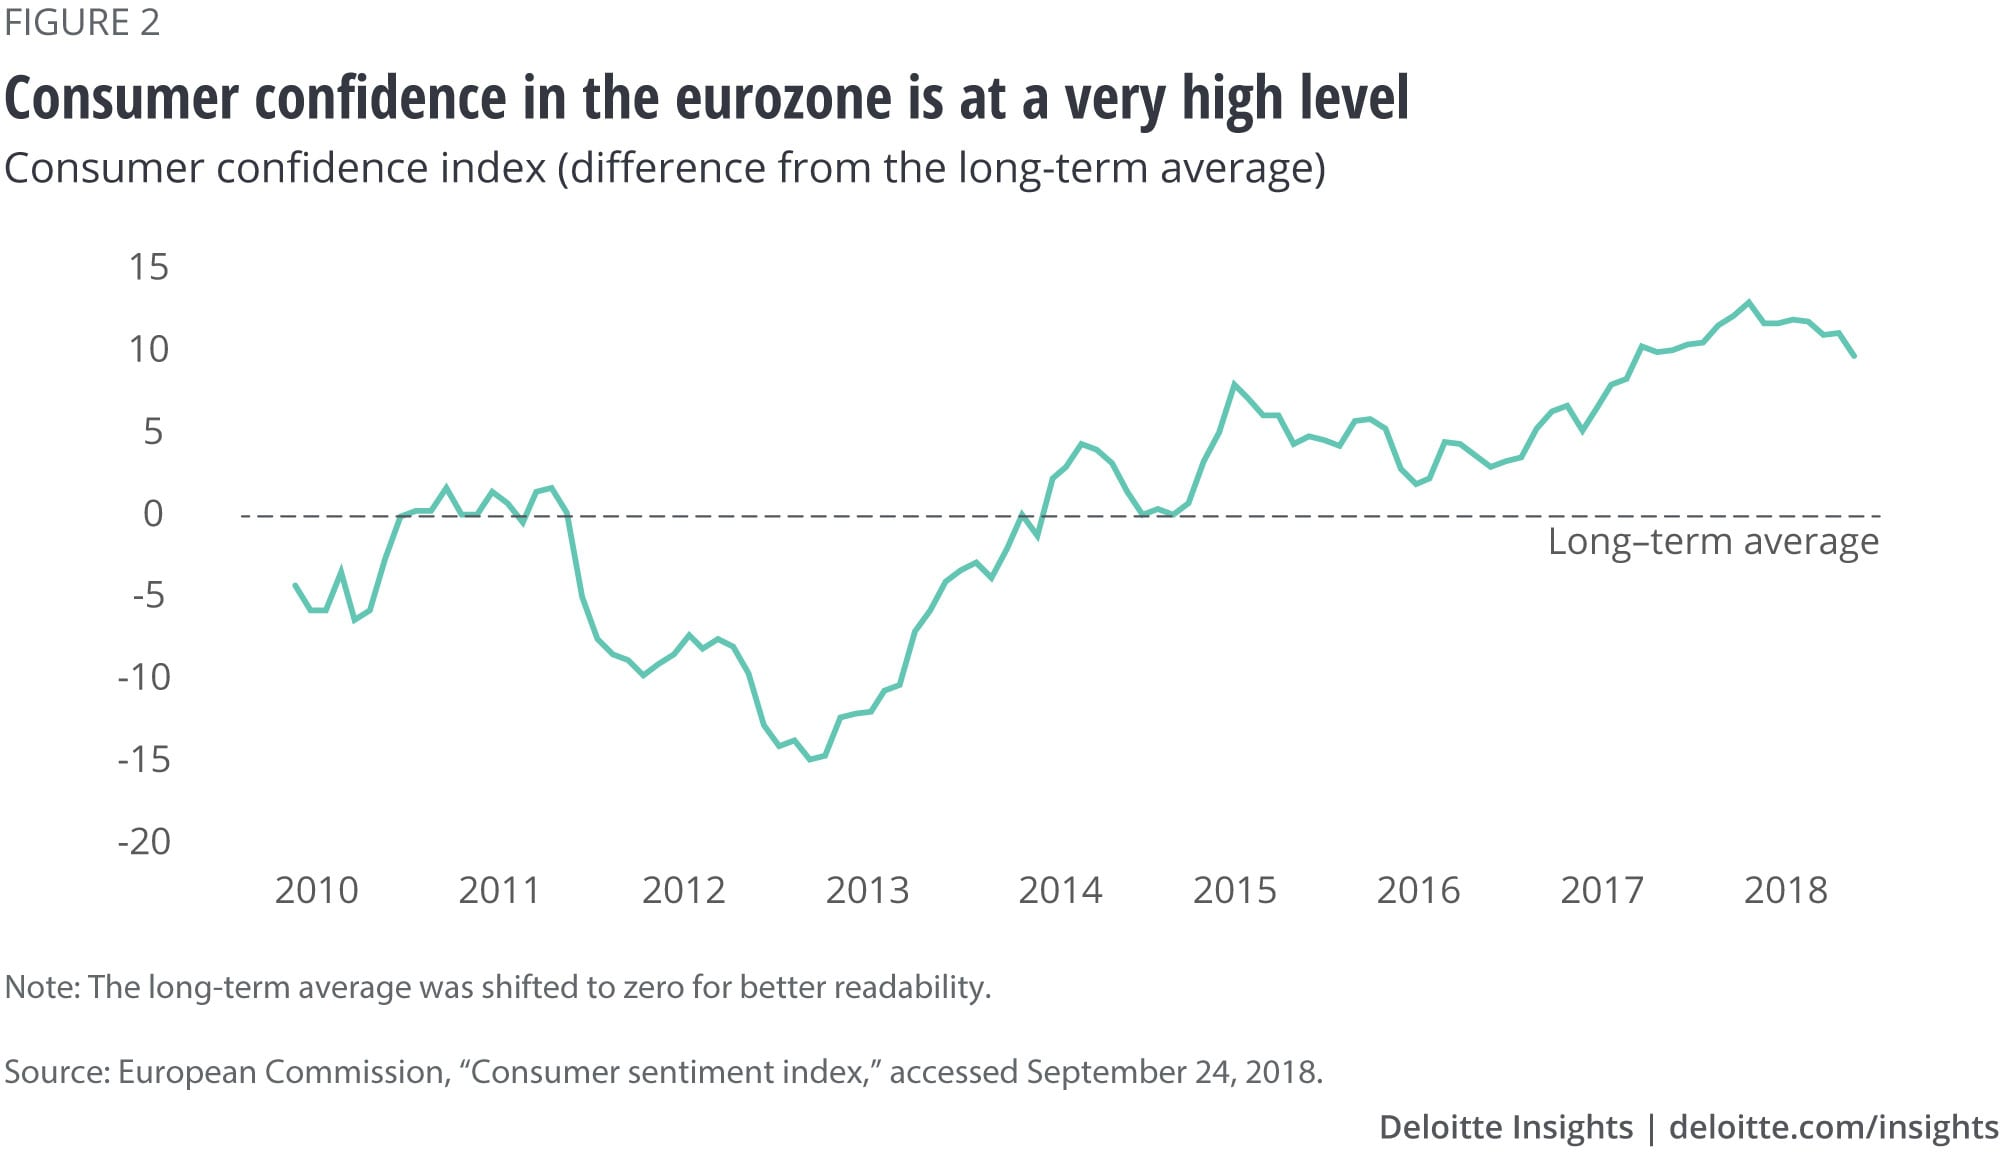 Consumer confidence in the eurozone is at a very high level